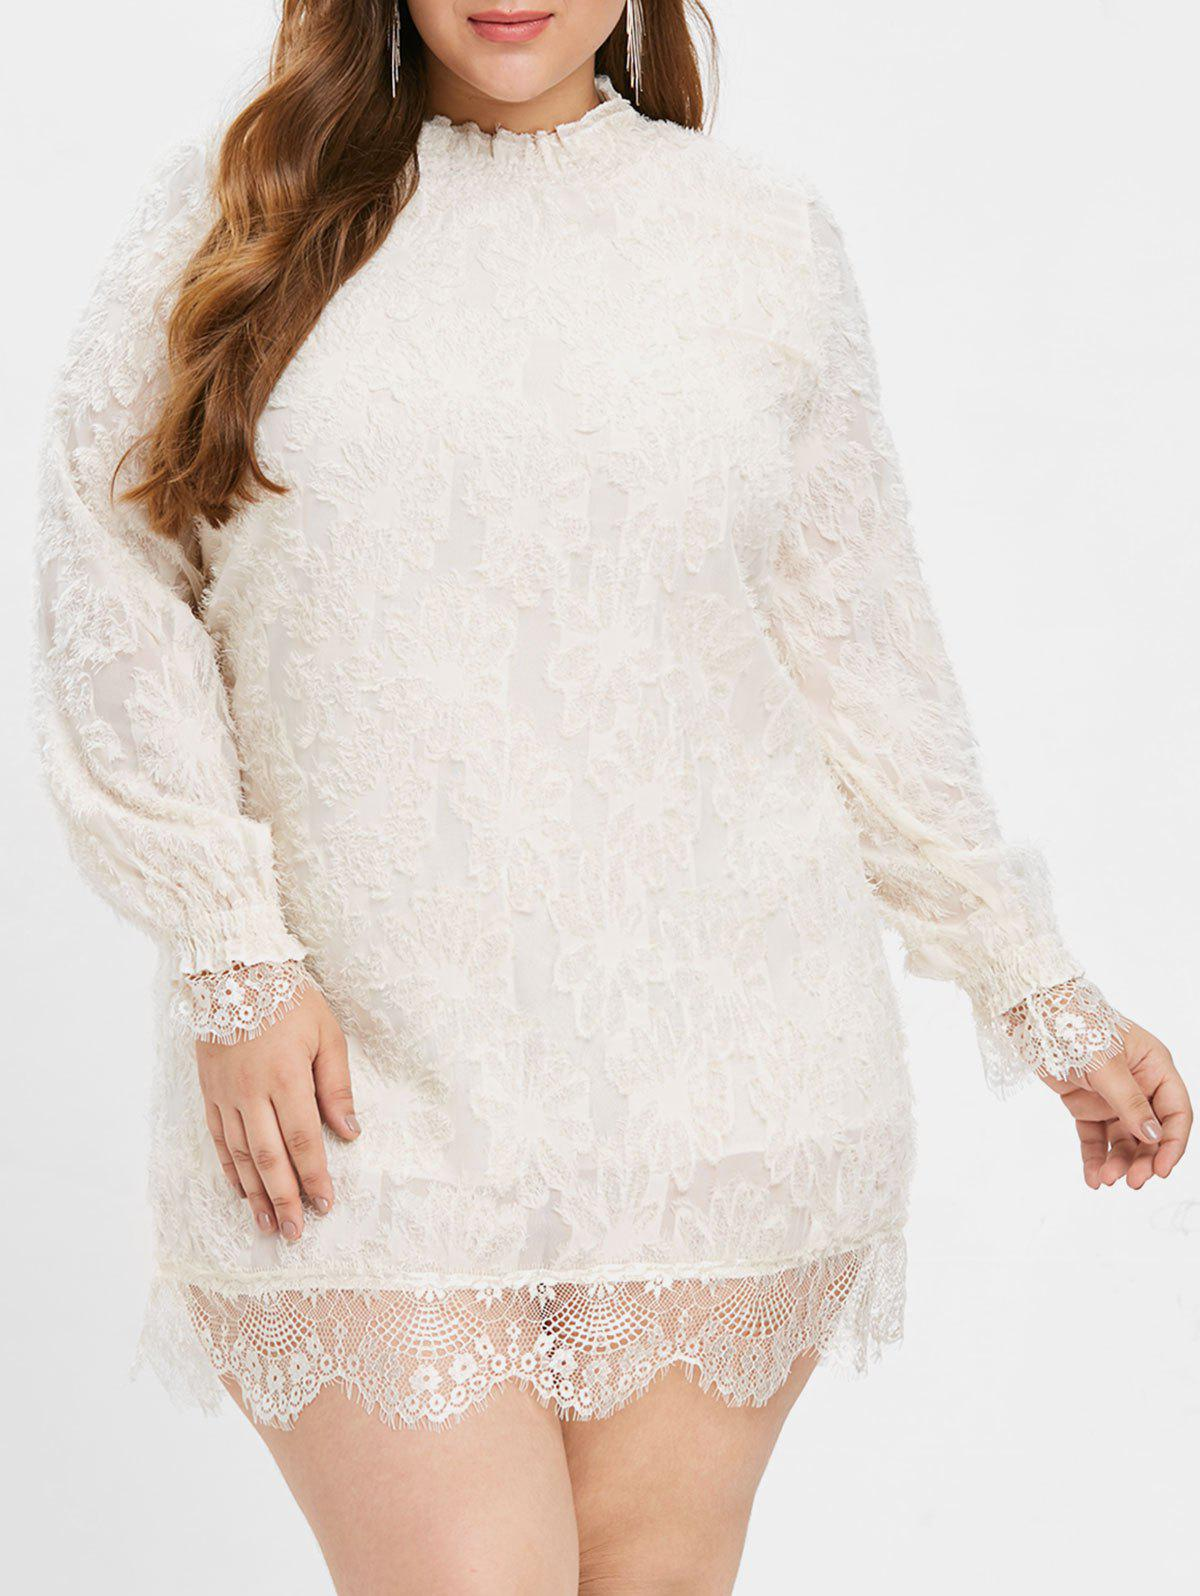 Fancy Plus Size Lace Eyelash Dress